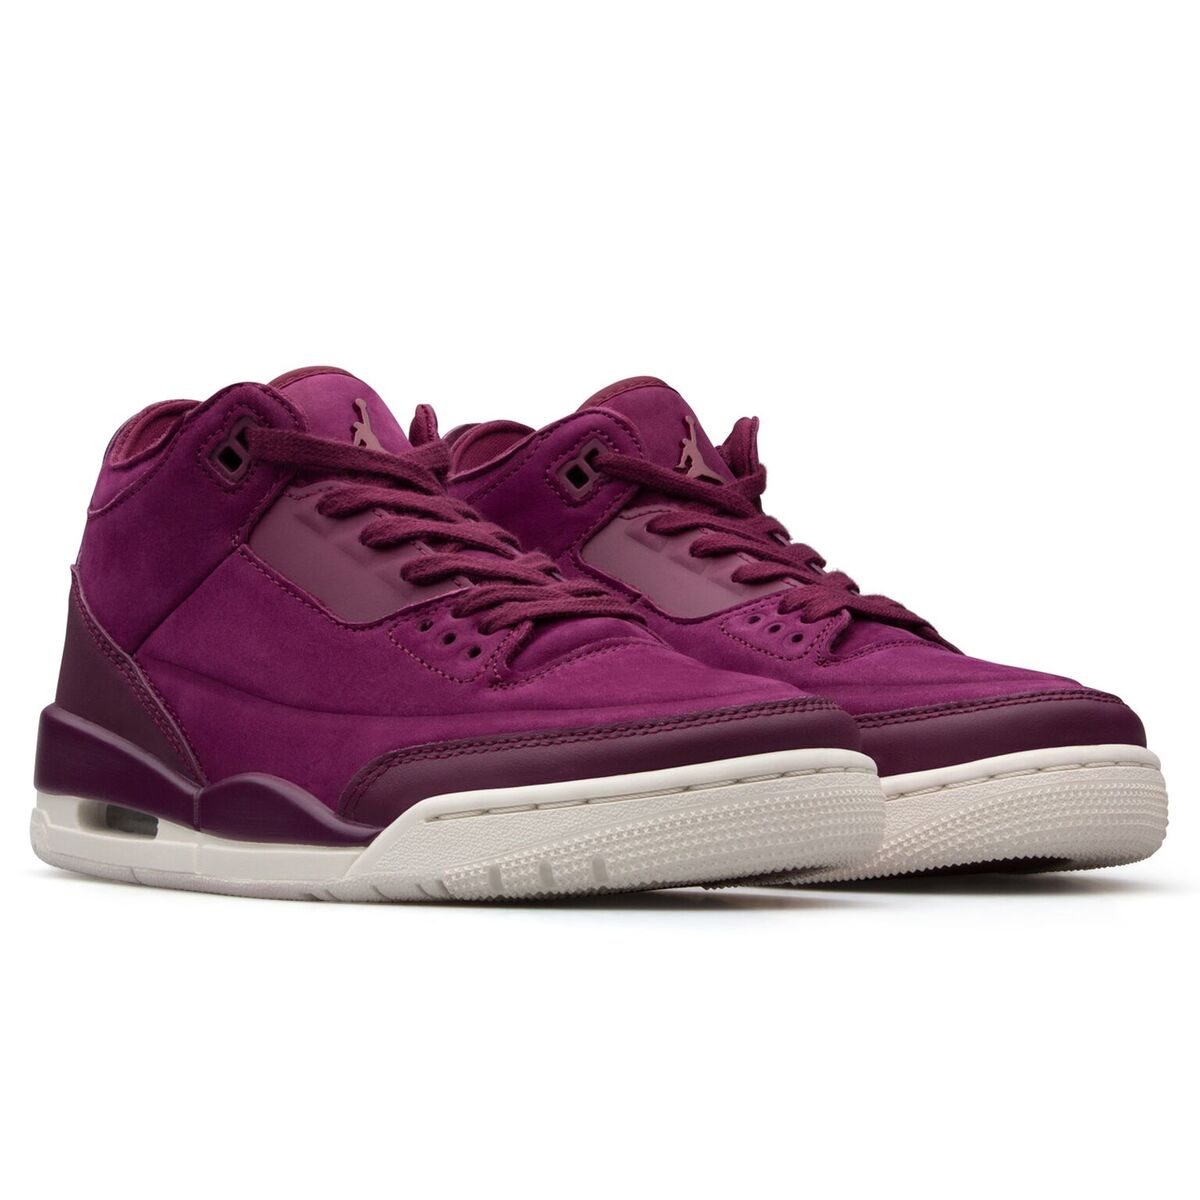 huge selection of 5feb9 4195a Jordan Brand WOMEN S AIR JORDAN 3 RETRO SE (Bordeaux Bordeaux-Phantom)